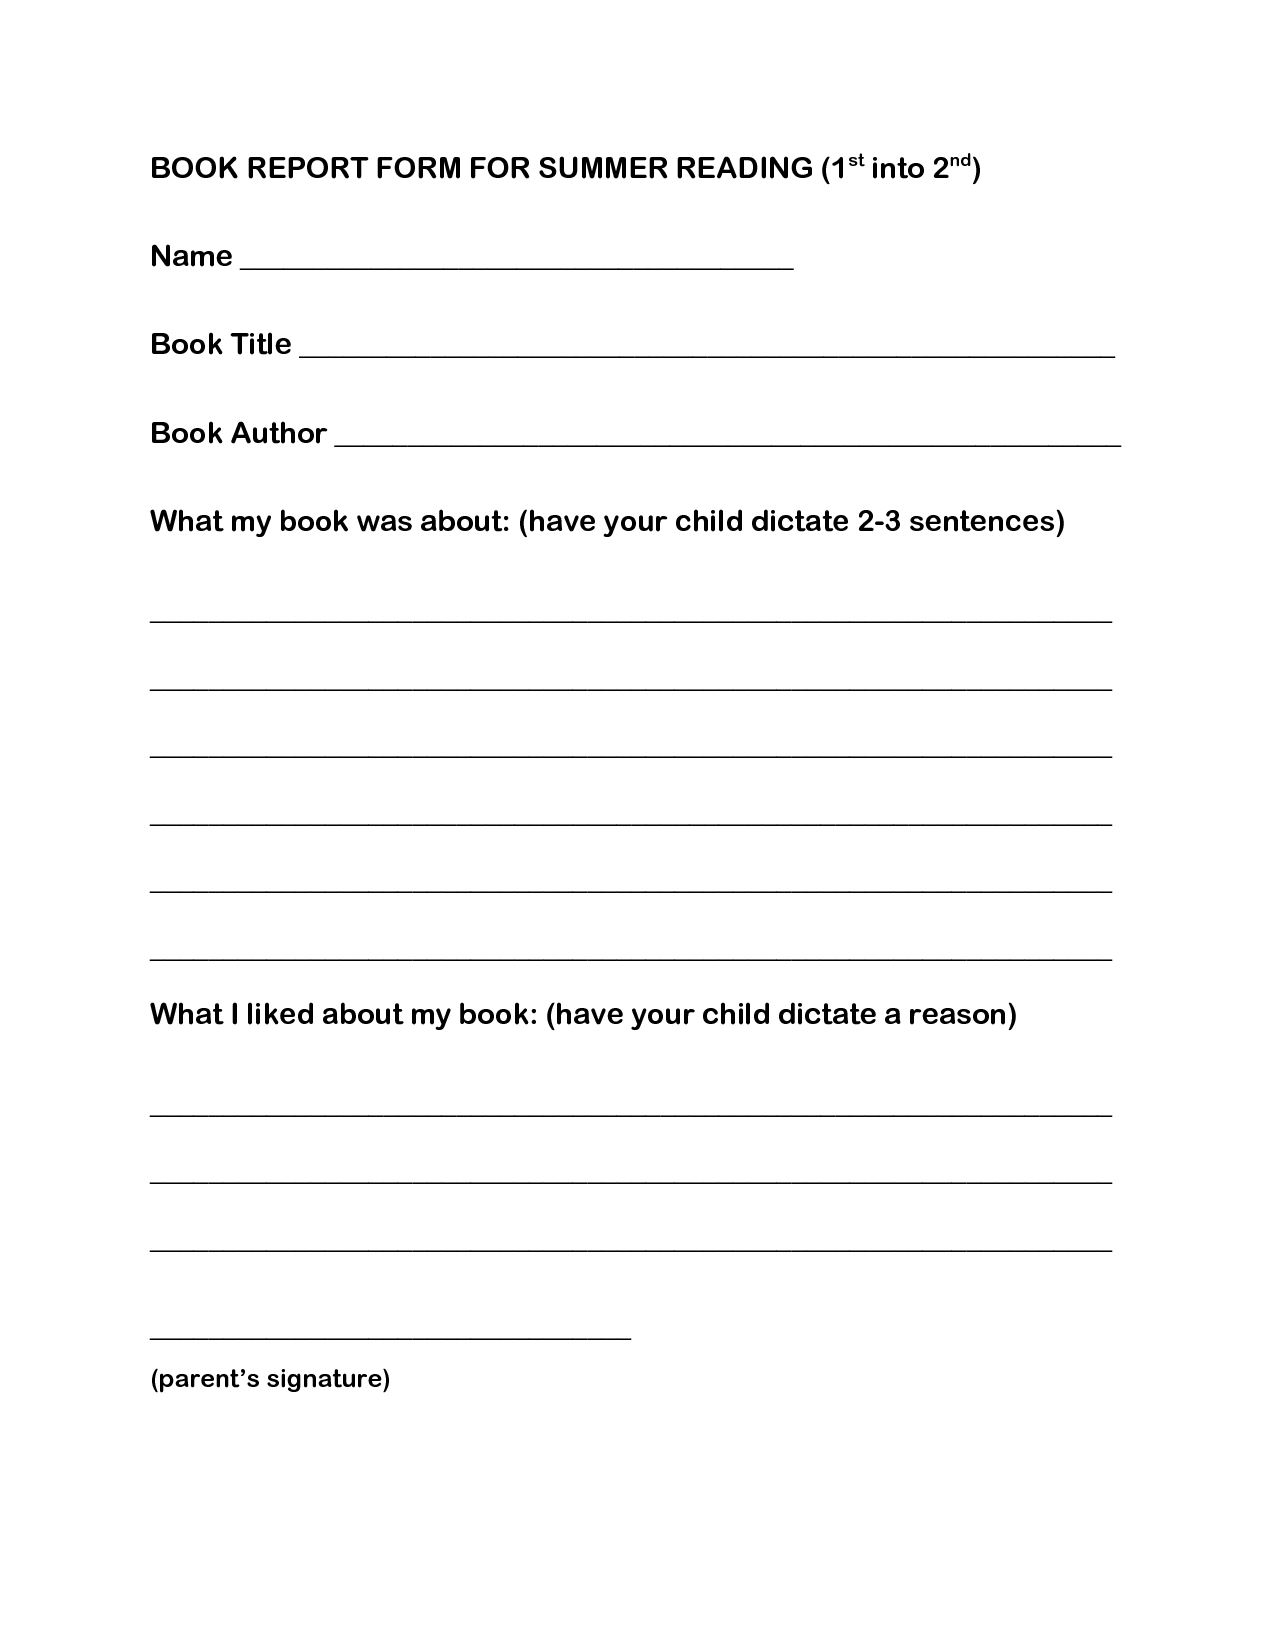 st grade reading log forms book report form for summer reading 1st grade reading log forms book report form for summer reading 1st into 2nd